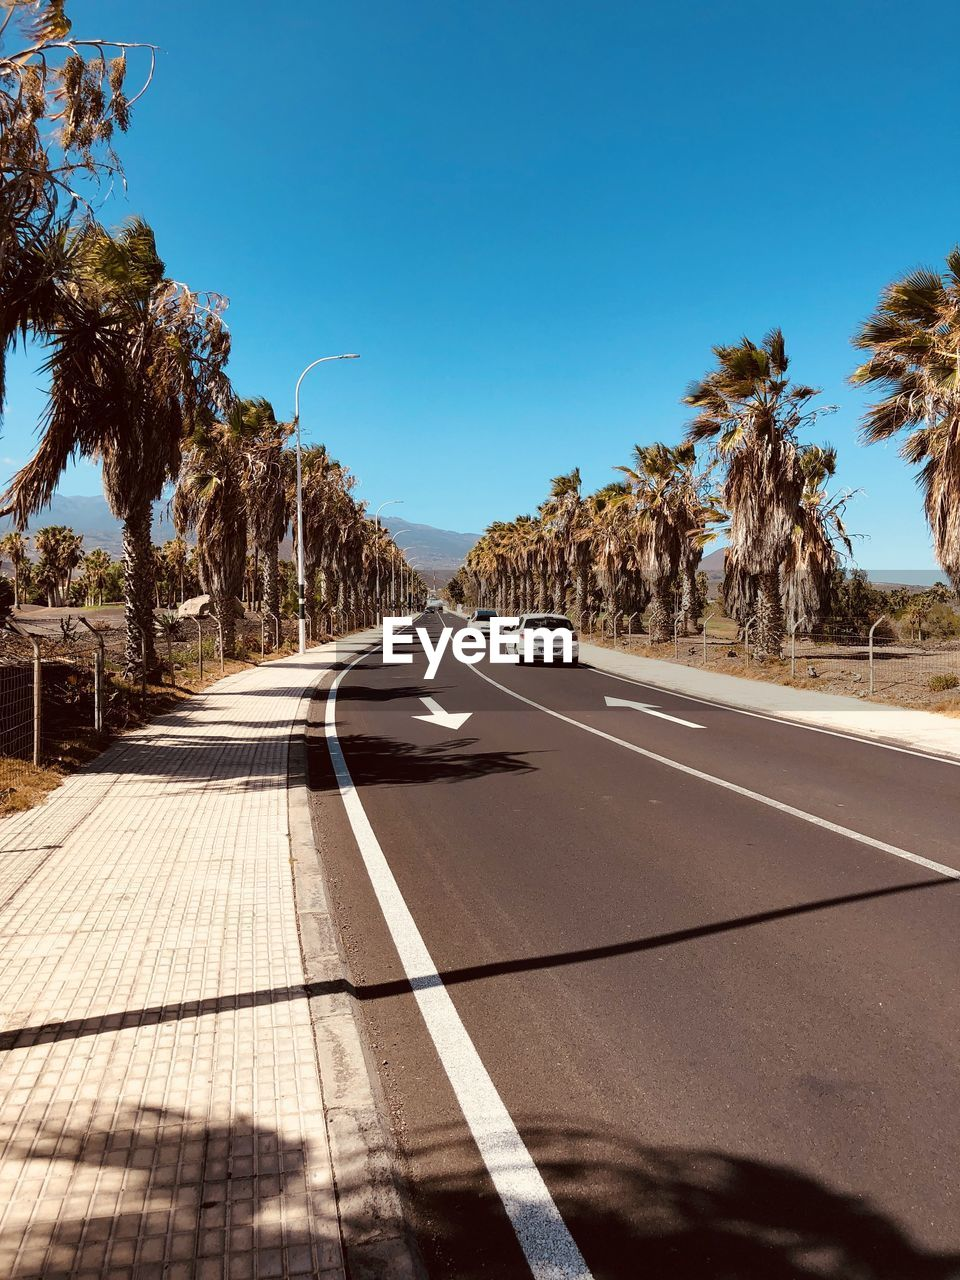 tree, transportation, sunlight, direction, sky, the way forward, plant, nature, road, road marking, car, marking, symbol, tropical climate, sign, palm tree, day, clear sky, no people, motor vehicle, diminishing perspective, outdoors, dividing line, long